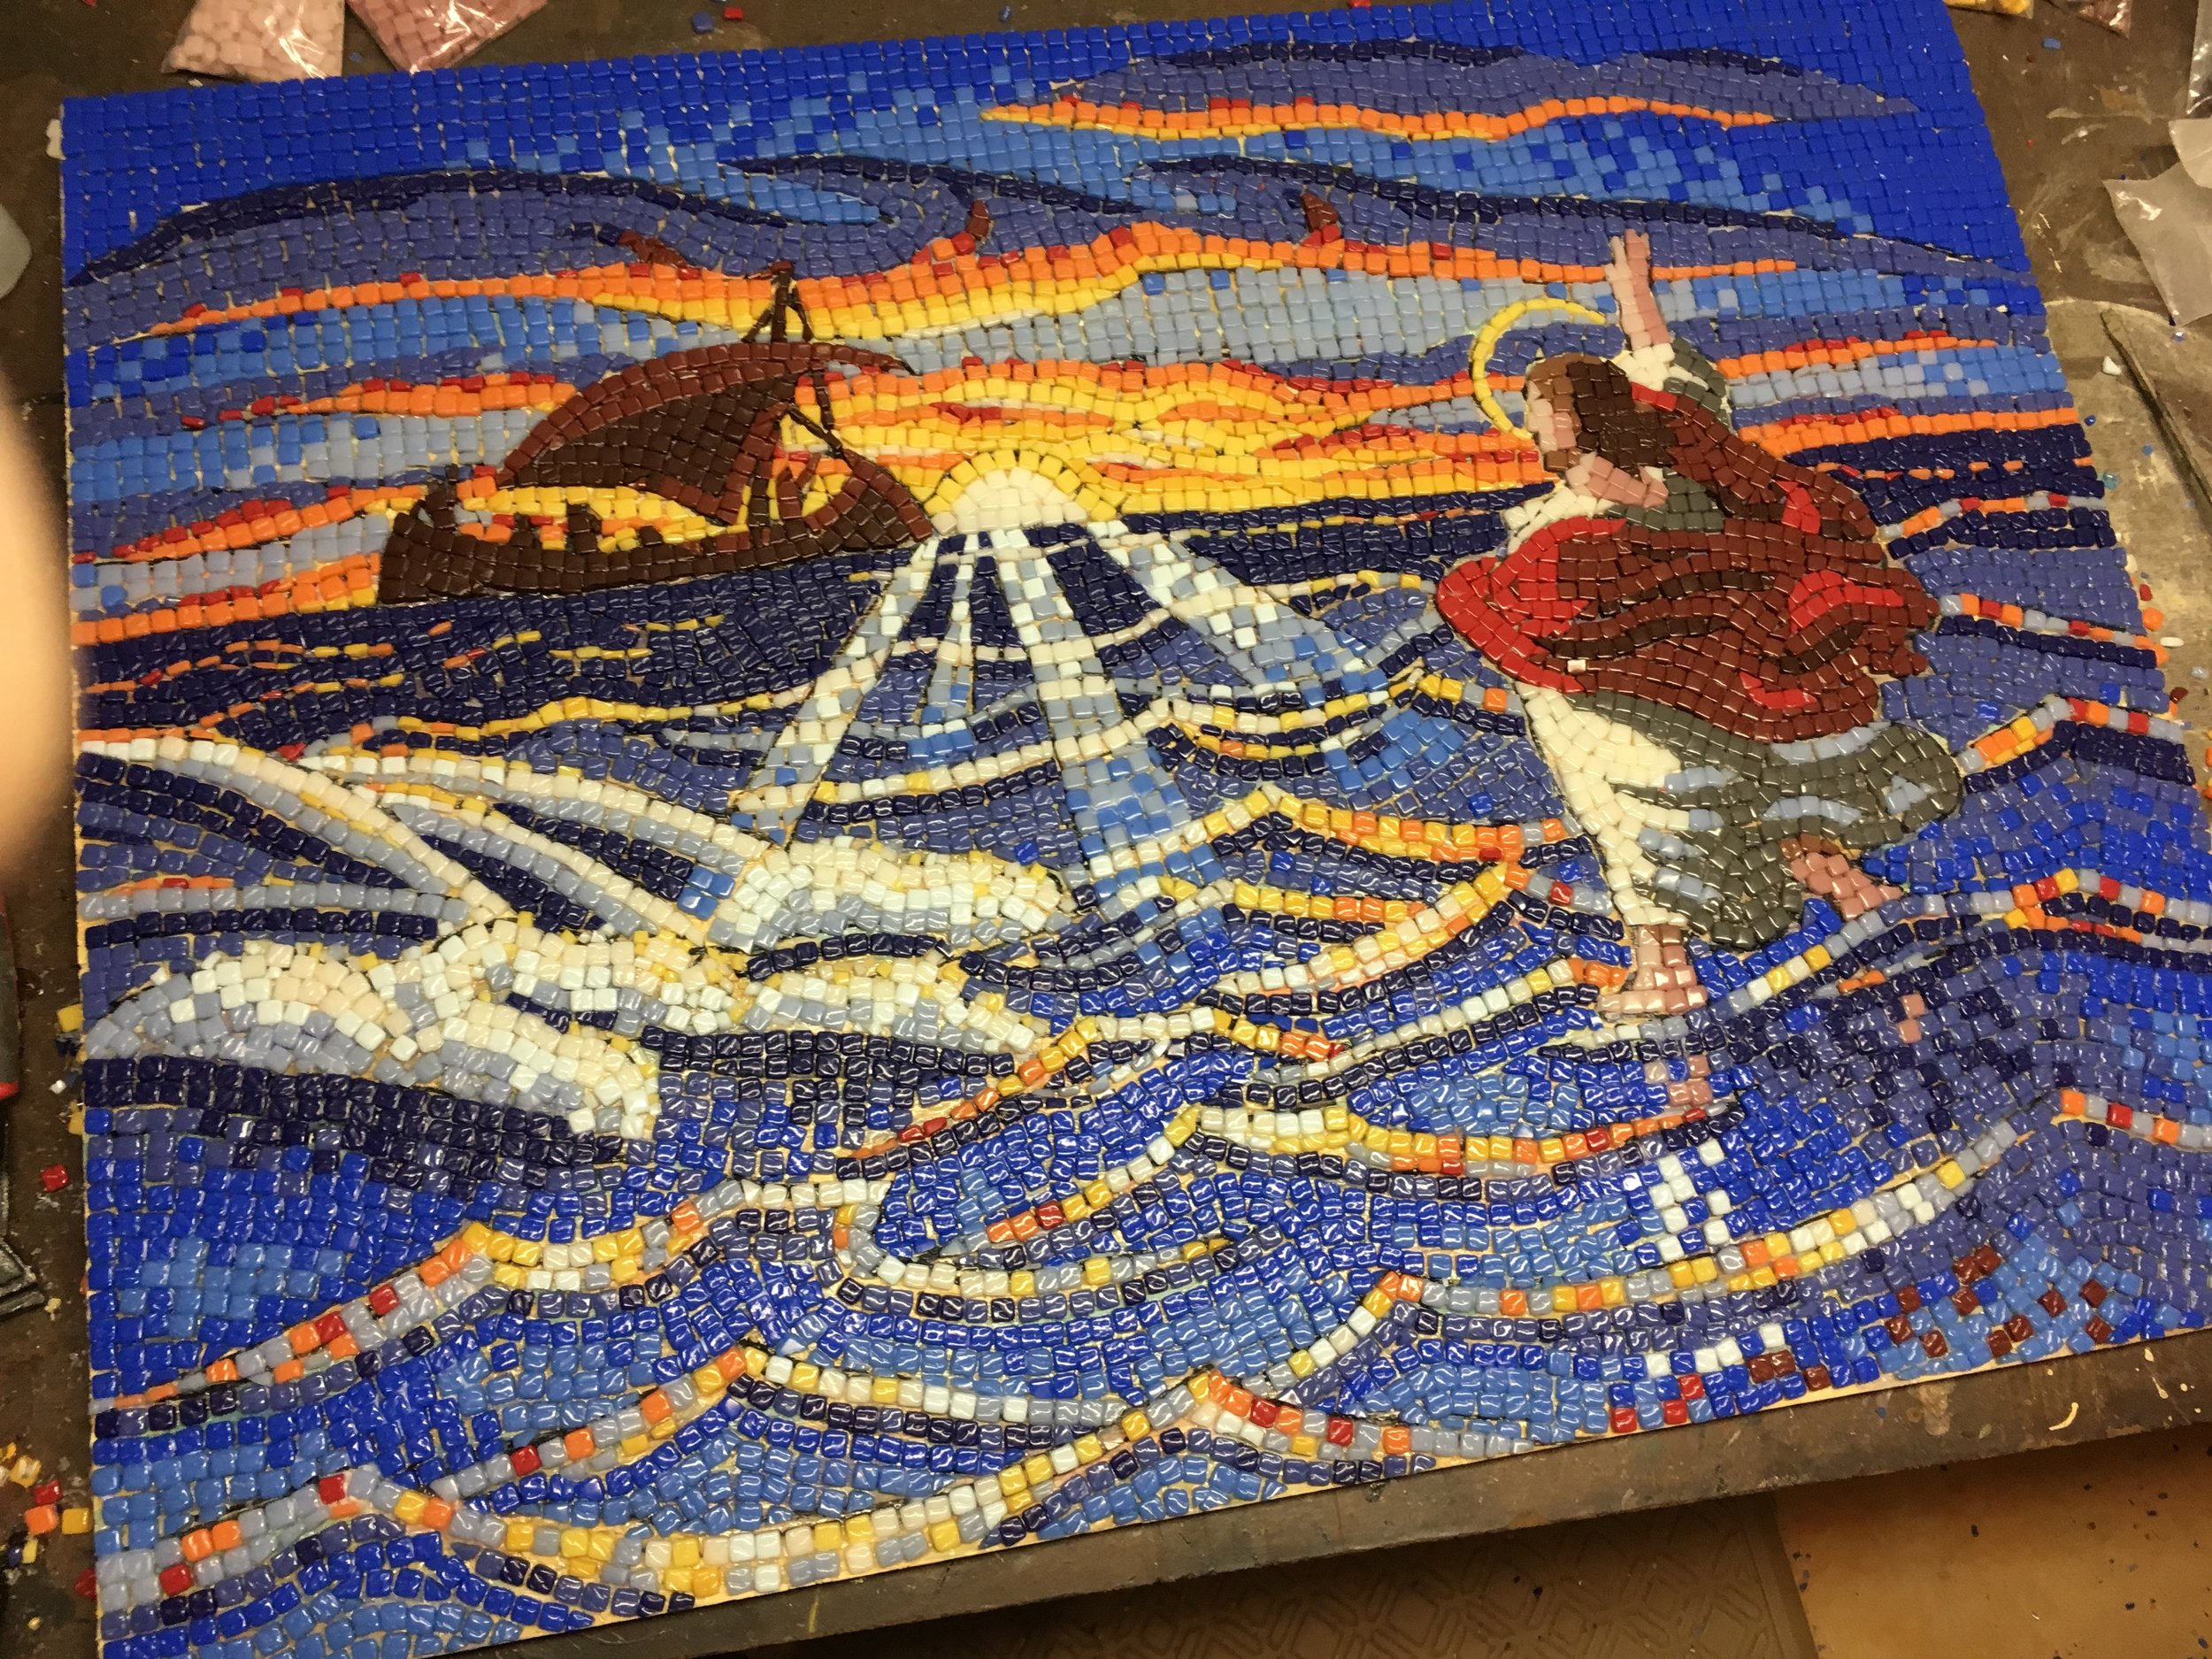 Over 6,000 glass tile pieces were glued one at a time. The final mosaic appears very bright here without the sandy brown grout to dull it down.